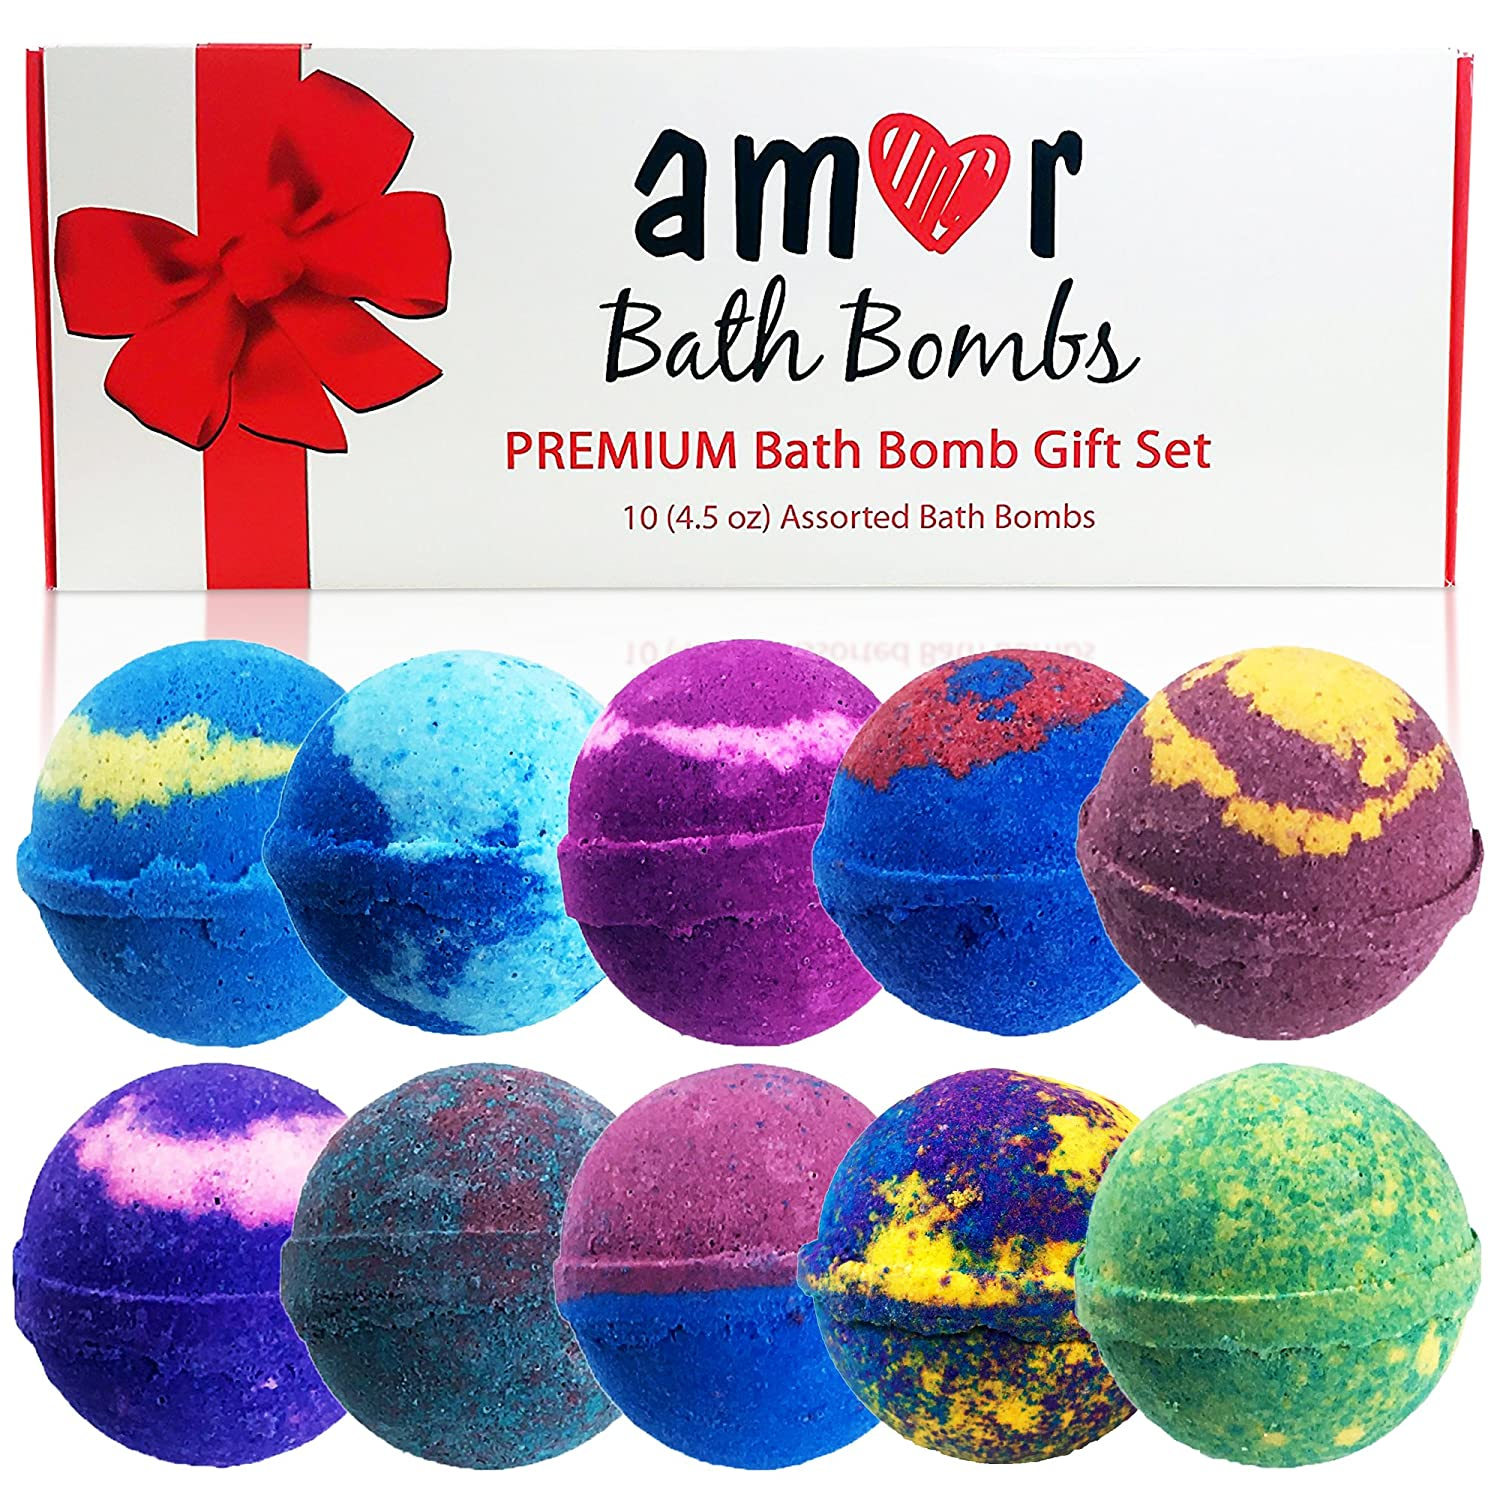 Amazon.com : AMOR 10 Bath Bomb Gift Set : Essential Oils Lush Bath Bombs  Set In Deluxe Package/100% Organic Vegan USA  Handmade Bath Fizzies Spa  Skin ...